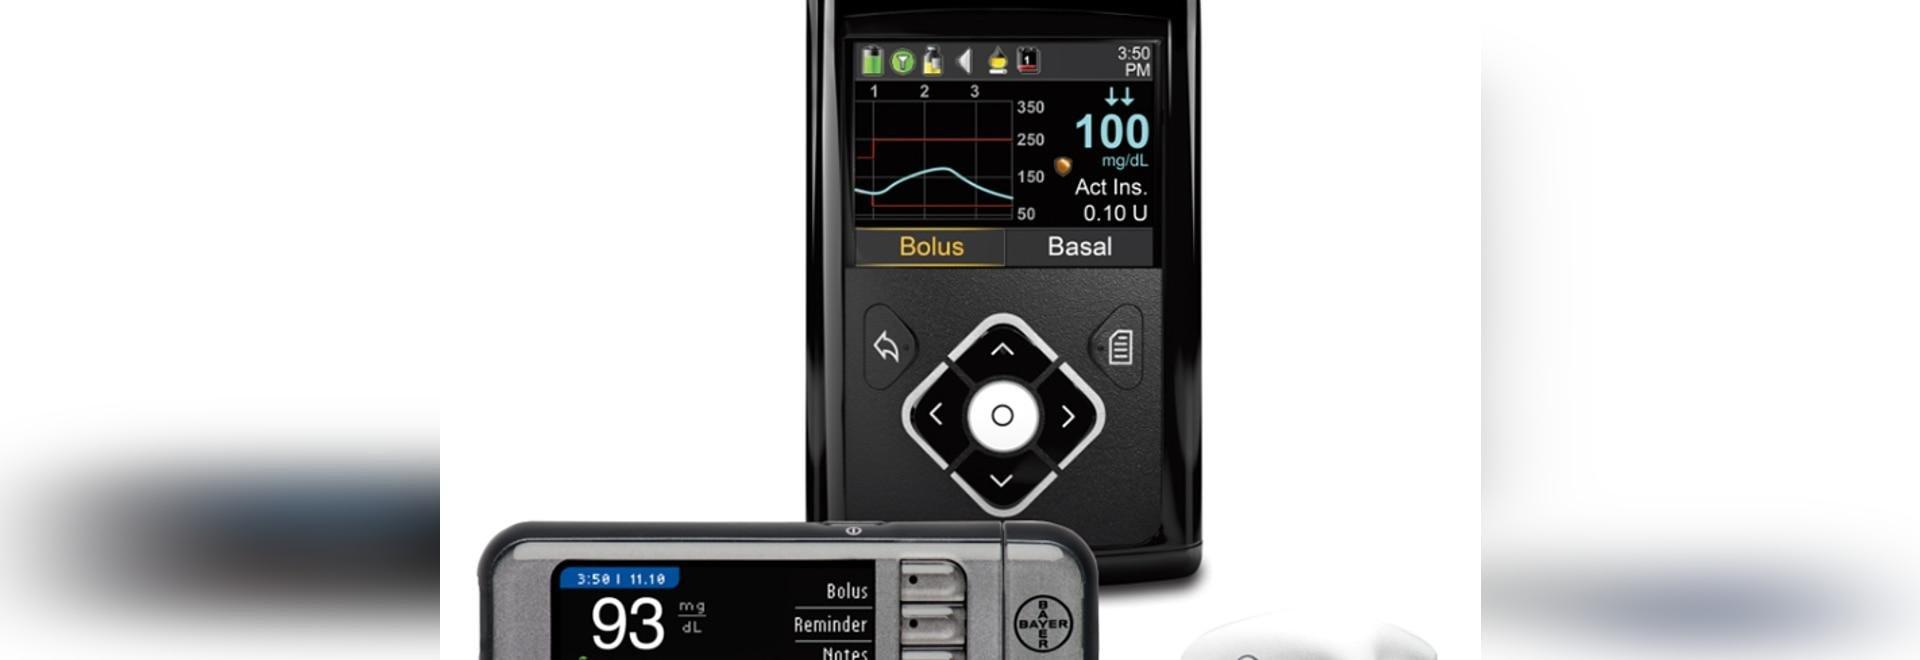 Insulin Pump 630g Diabetestalk Net